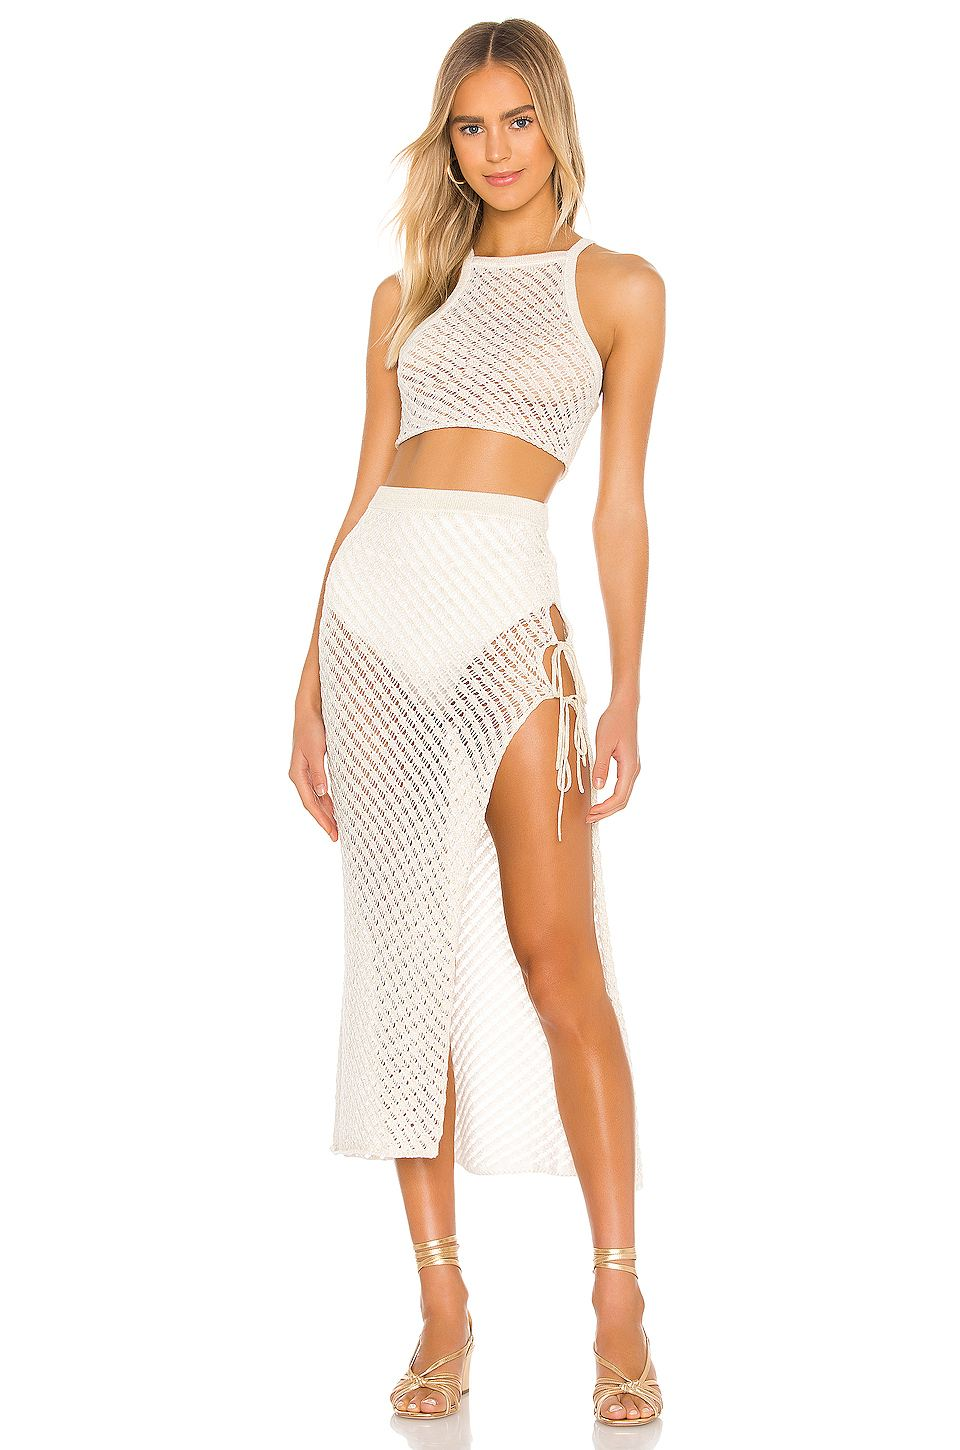 Camila Coelho, Camila Coelho  midi skirt, white  midi skirt, crochet detailing, braless white Camila Coelho crop top, display, knotted, midi, high waist, matching, sexy